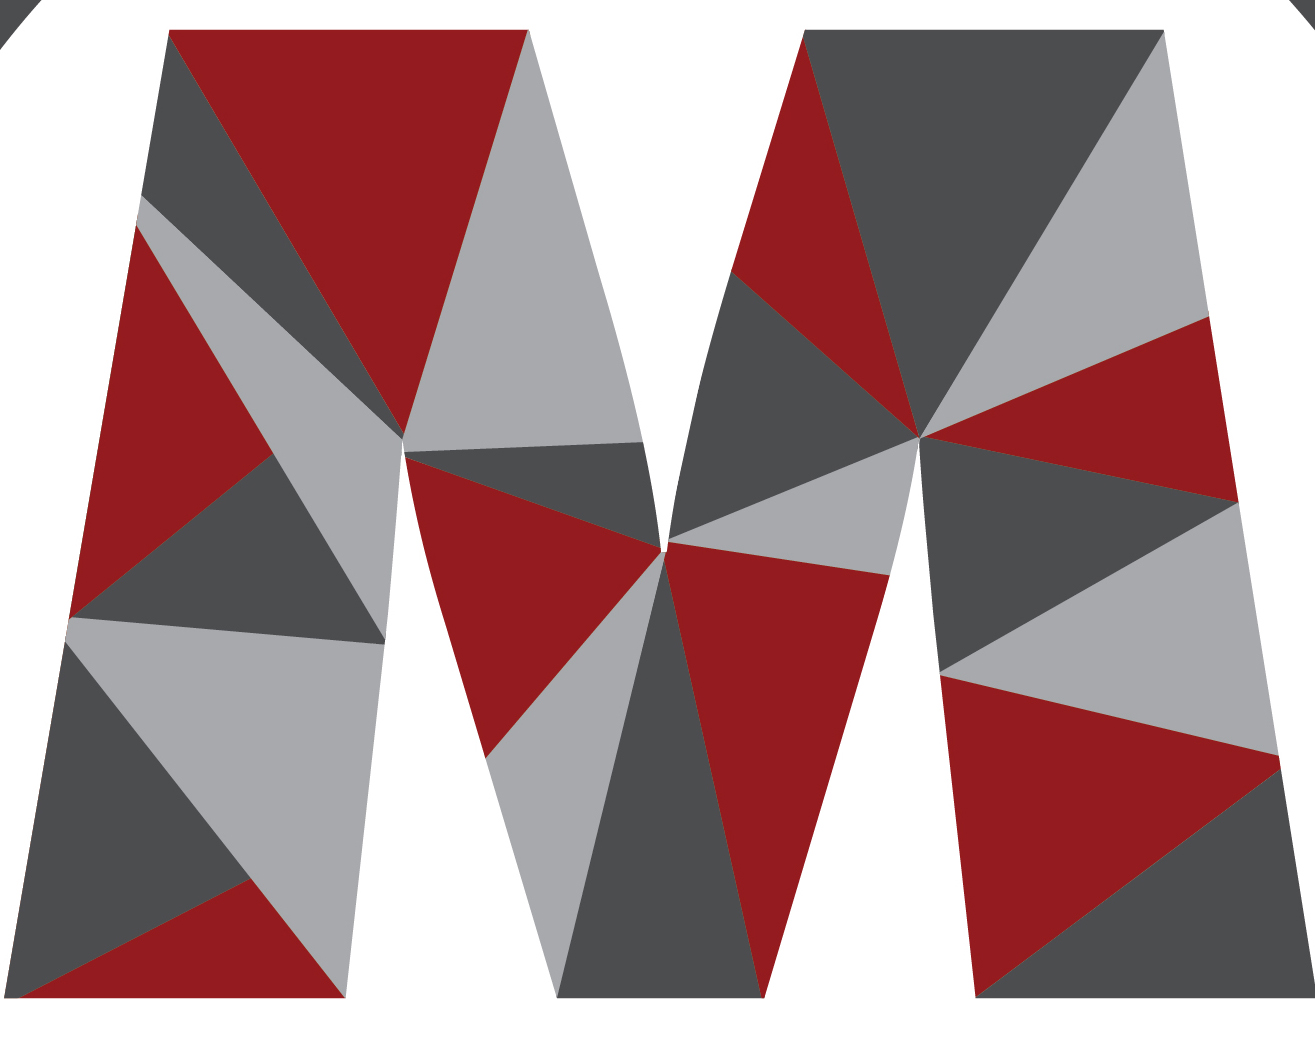 Letter M created with various patterns